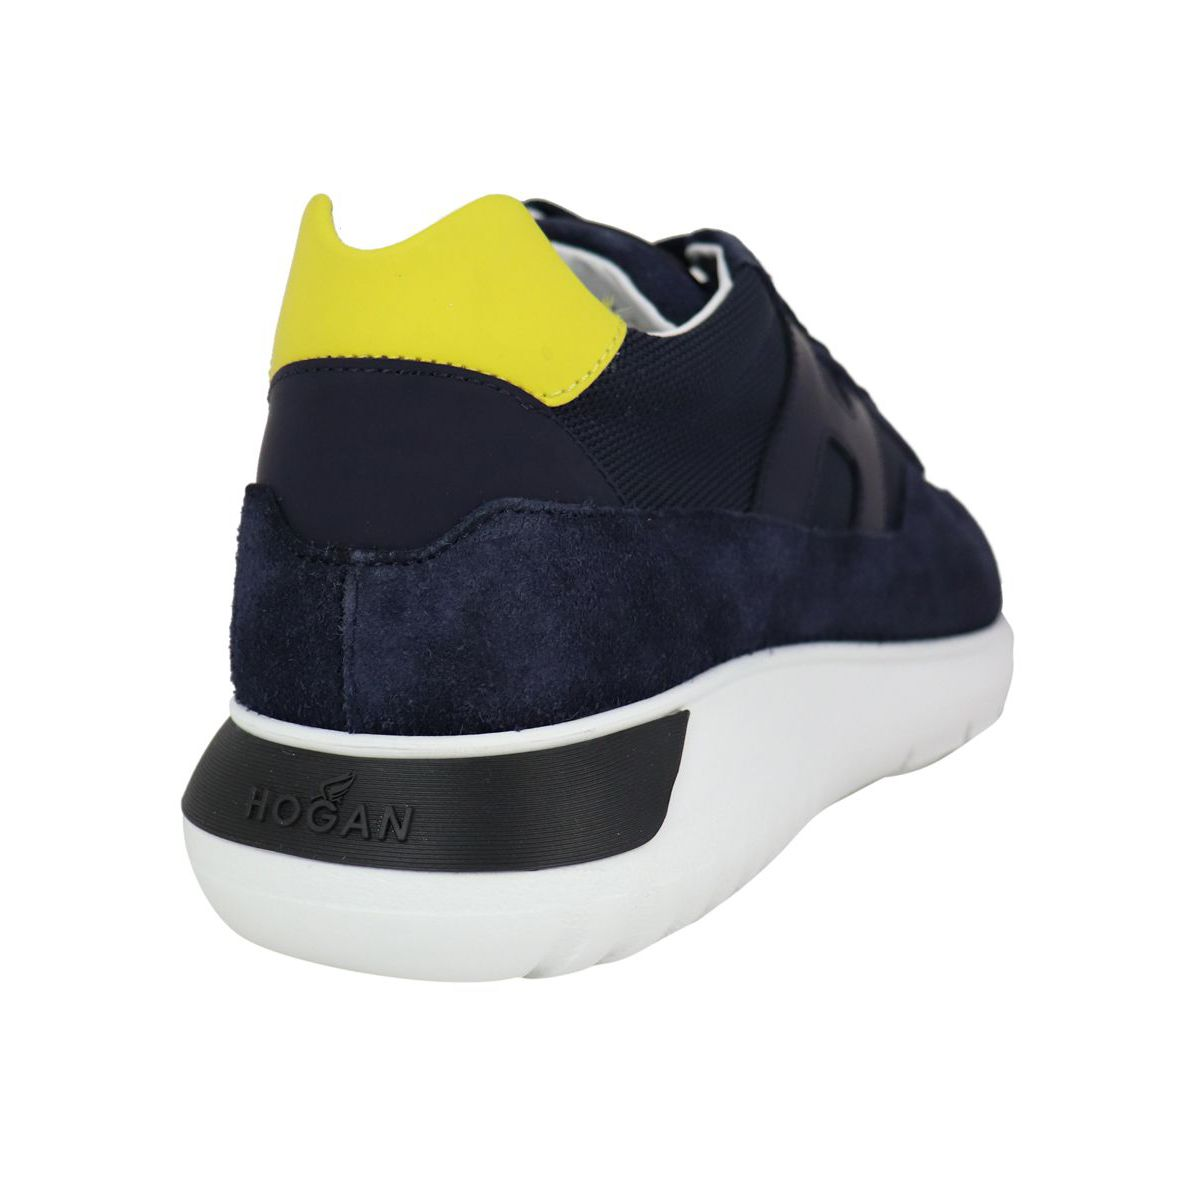 INTERACTIVE3 sneakers with contrasting back heel Blue Hogan